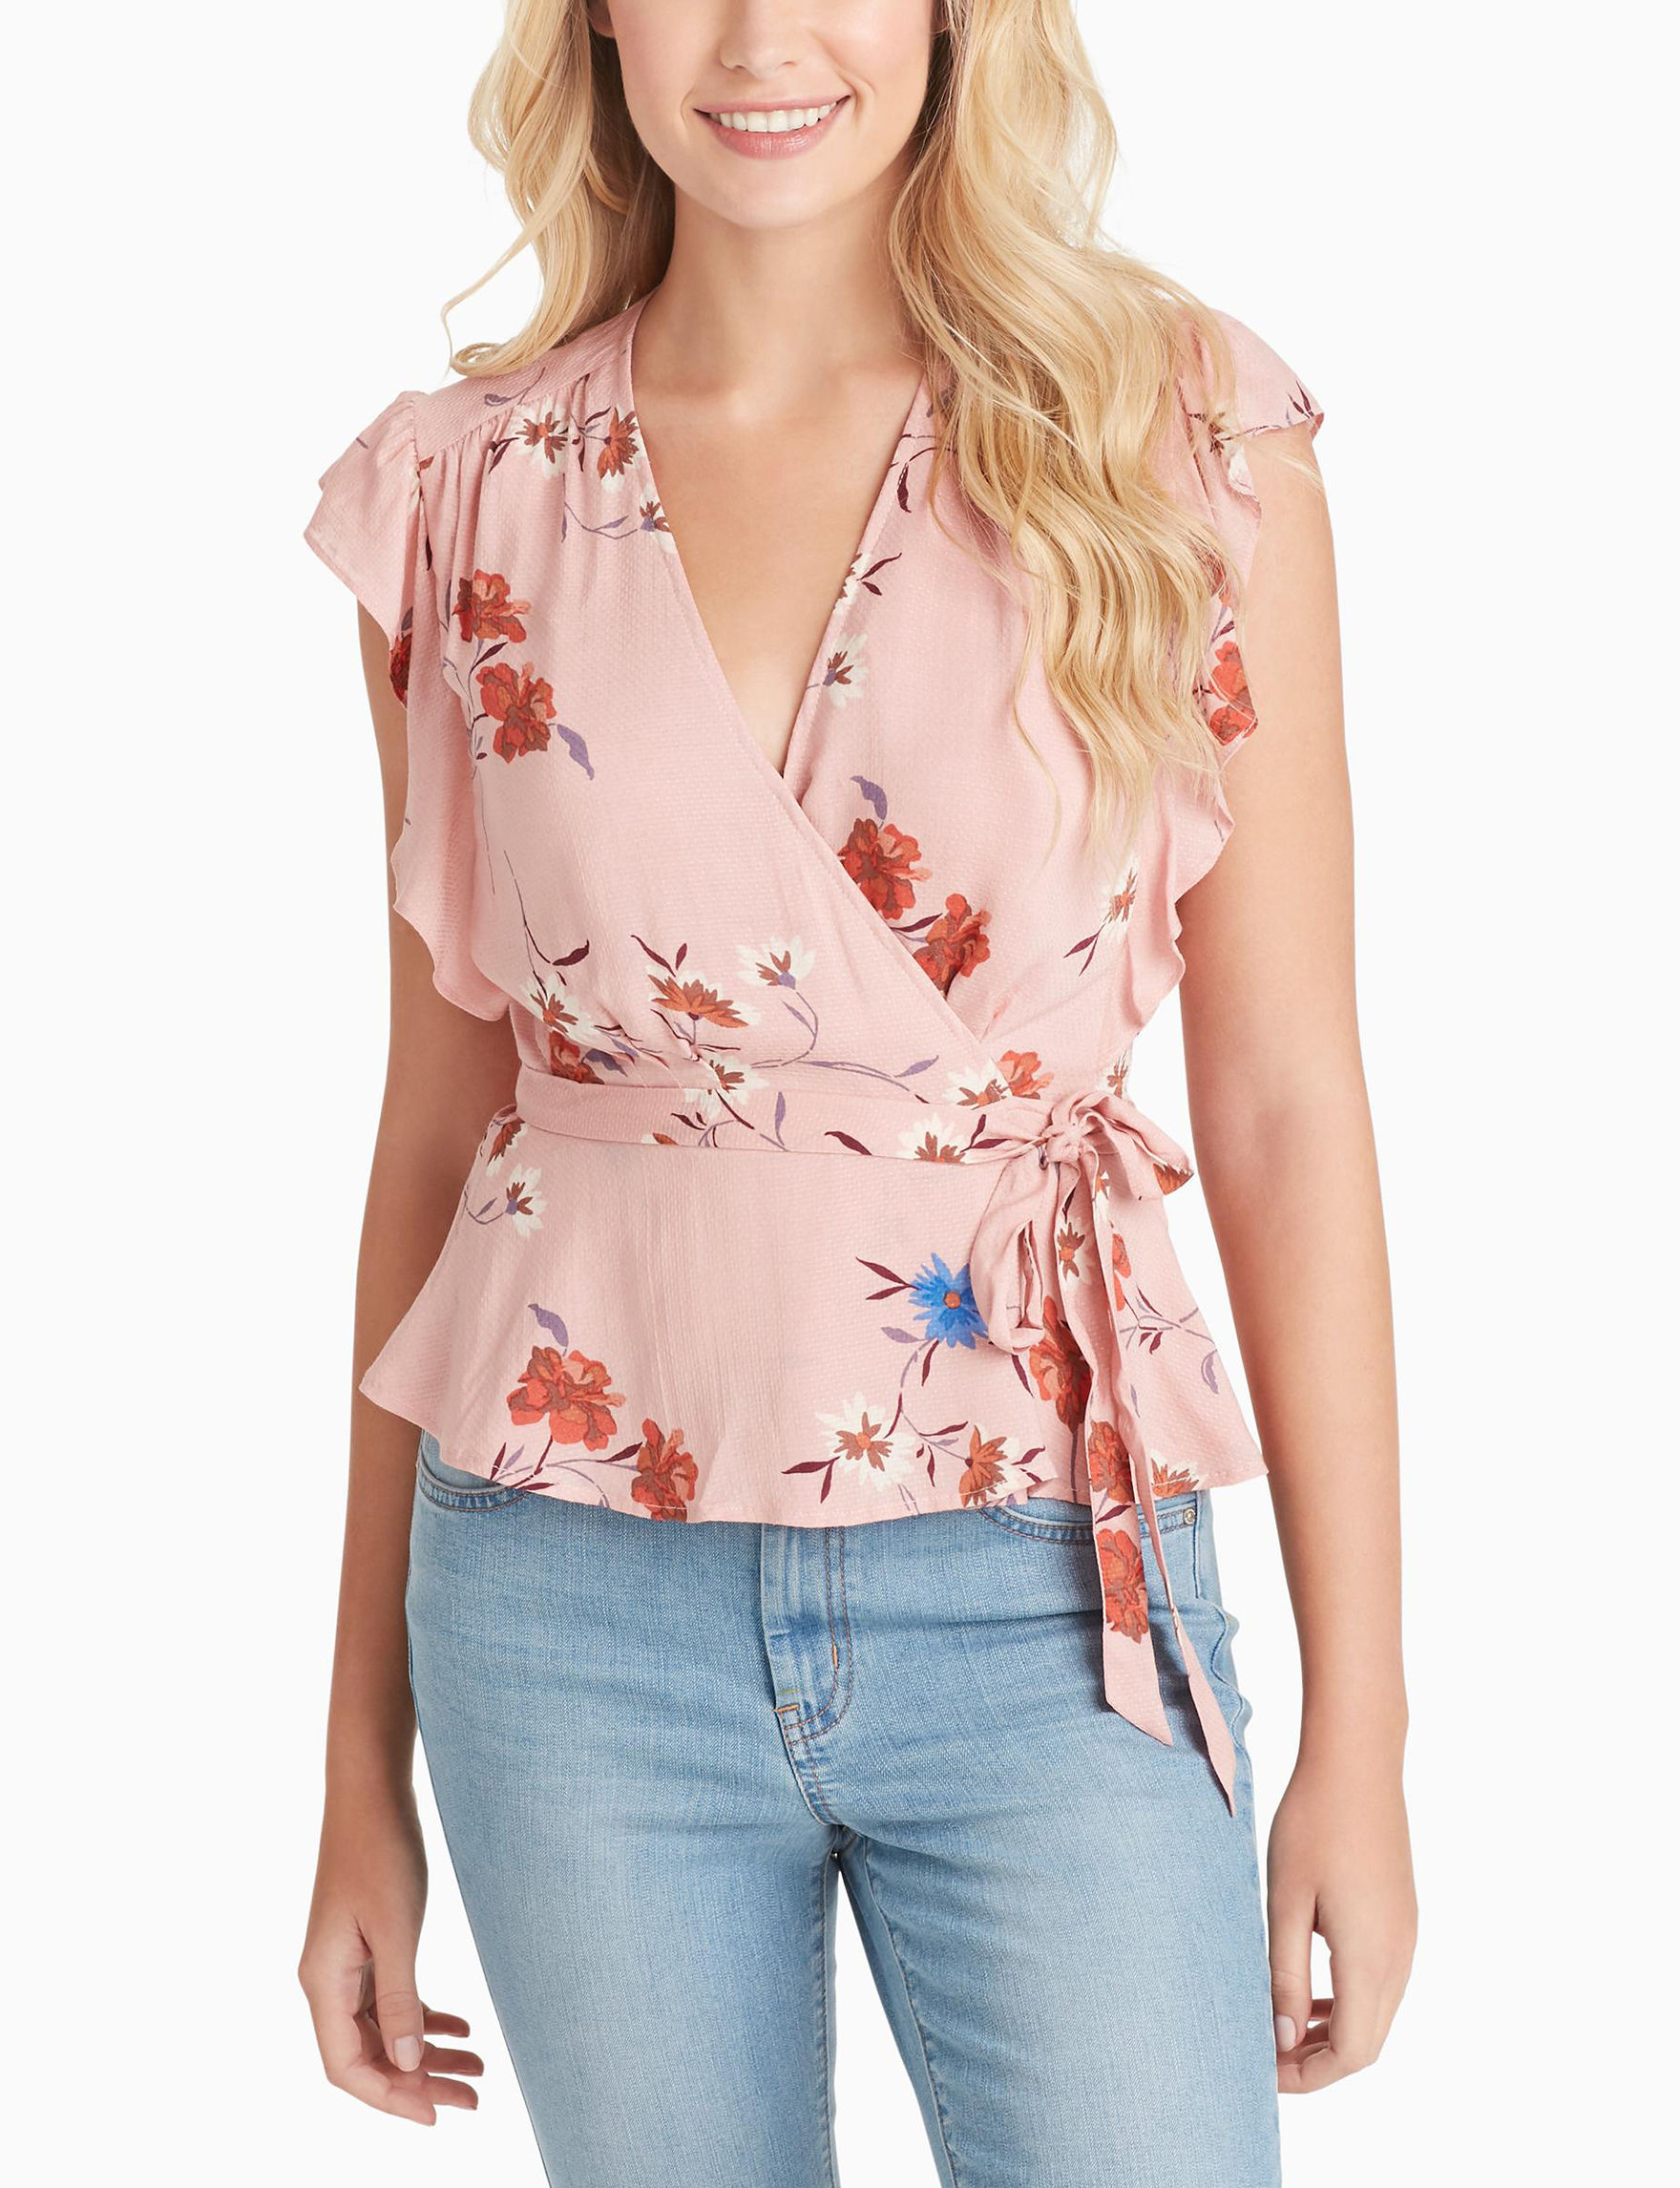 Jessica Simpson Pink Floral Shirts & Blouses